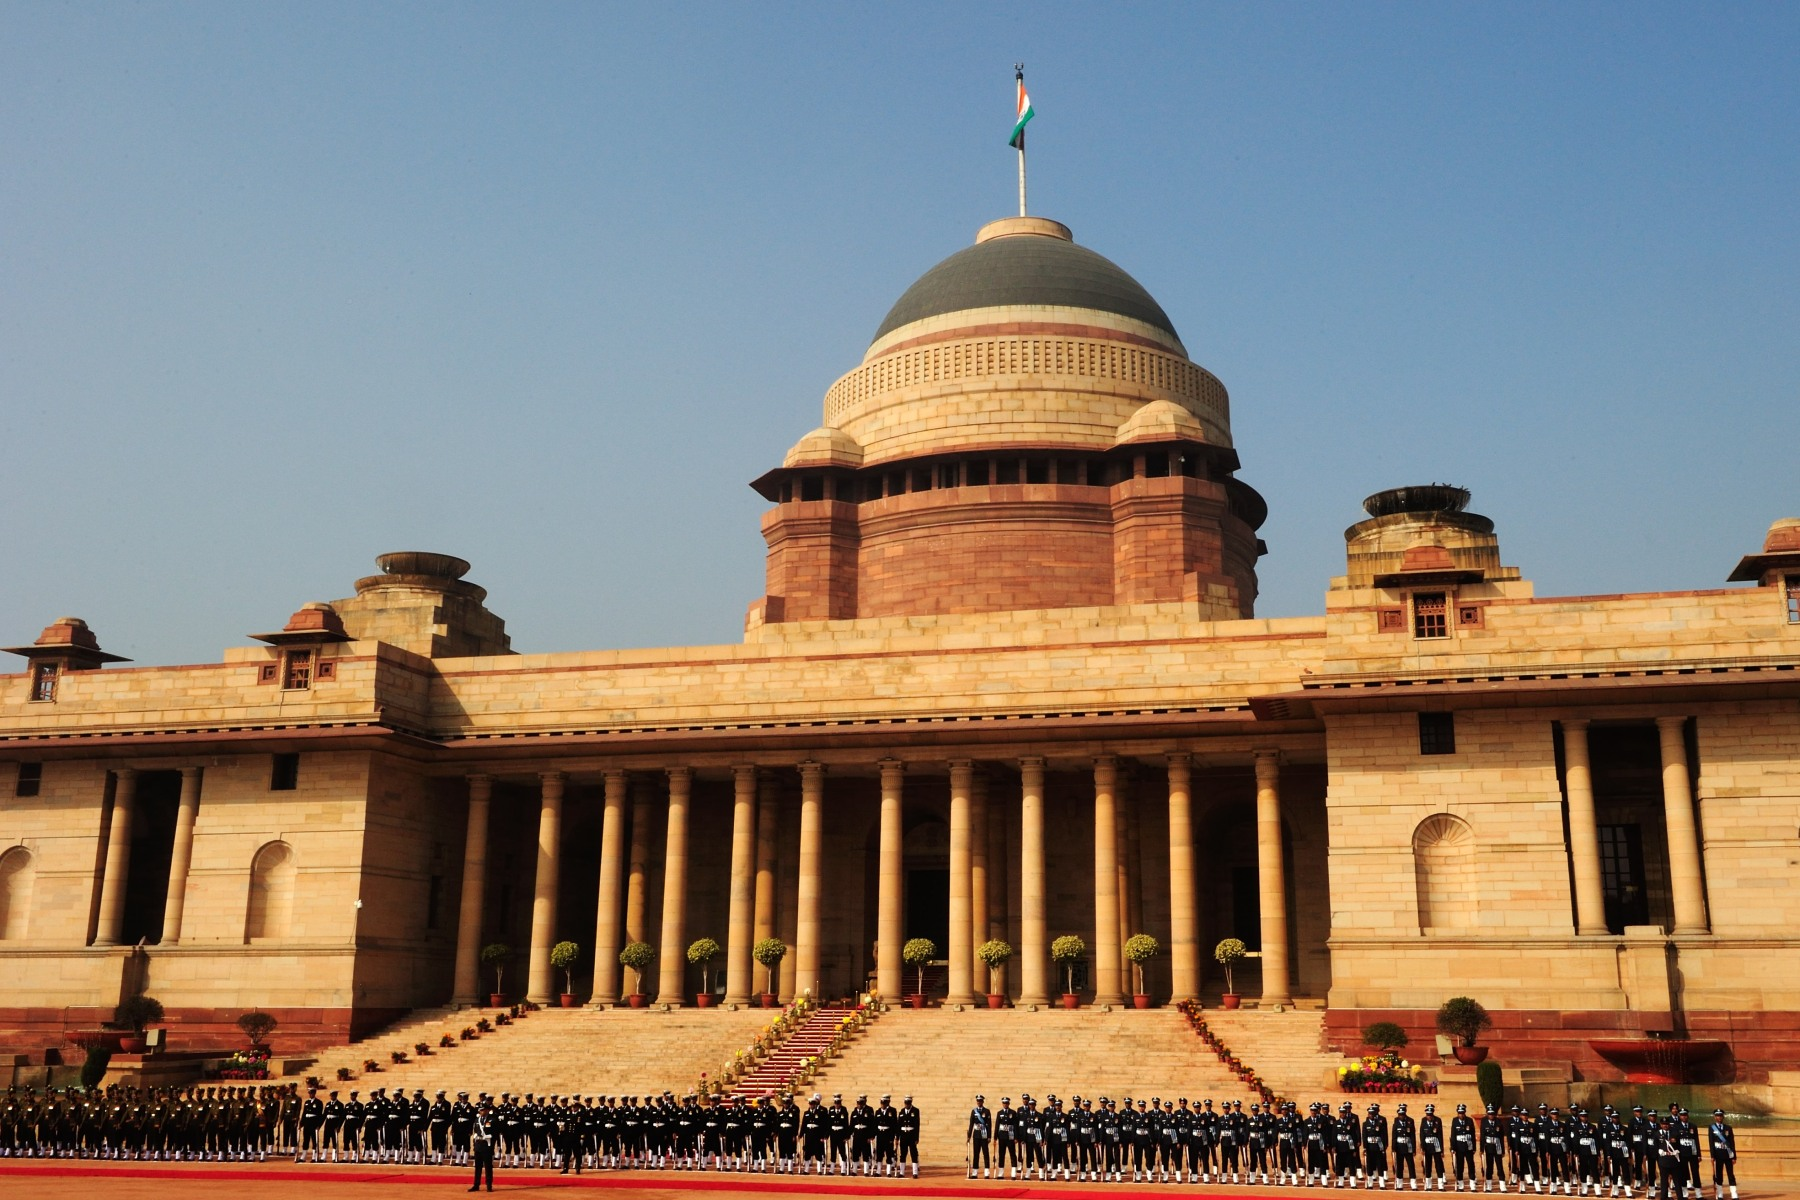 Upon their arrival in the capital city of New Delhi, Their Excellencies were officially welcomed during a military ceremony at Rashtrapati Bhavan.